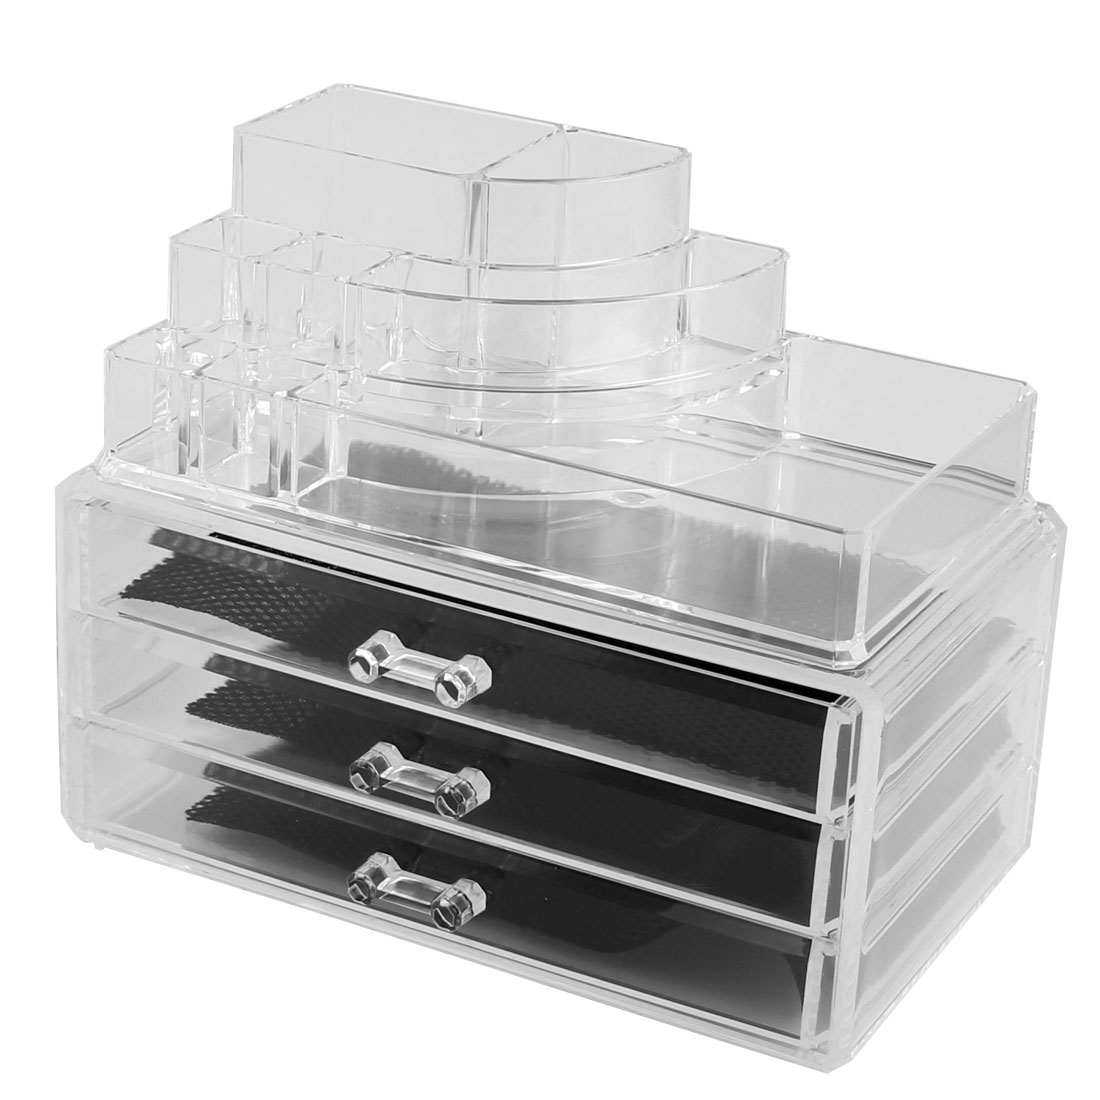 Home Acrylic Multichamber Transparent Jewelry Makeup Storage Organizer Set 2 in 1